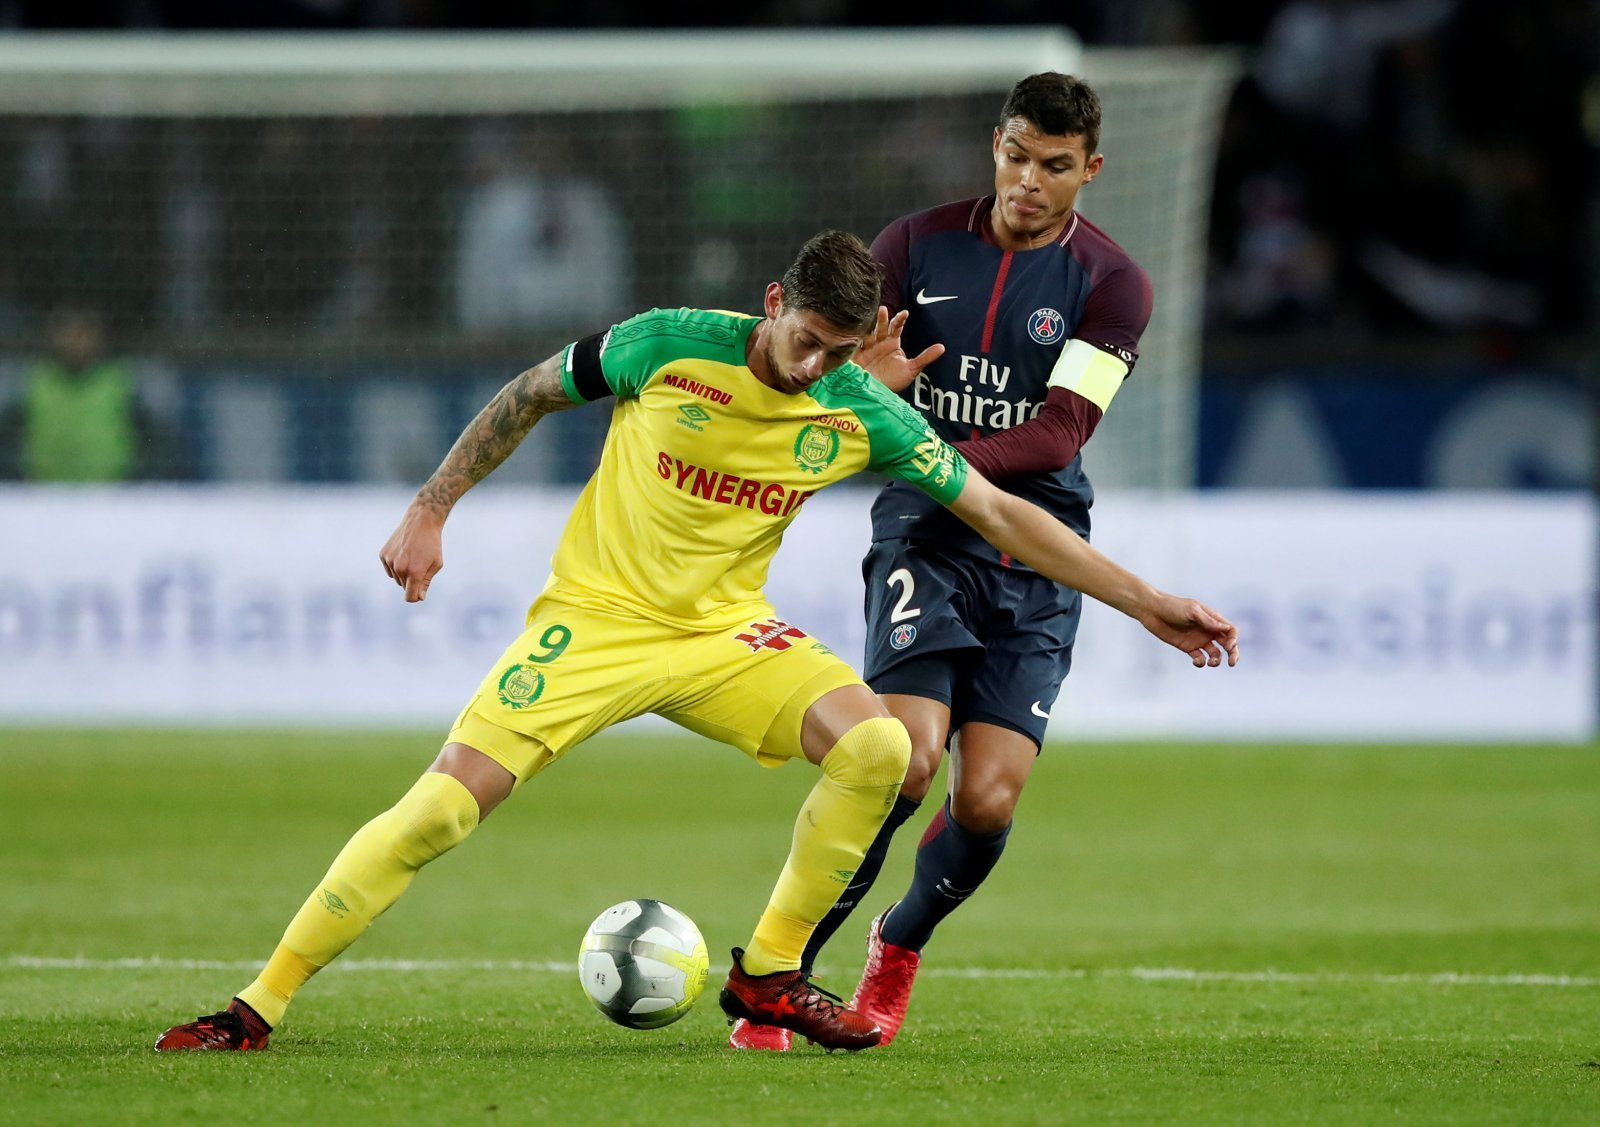 Nantes accept Emiliano Sala needs to be sold in January